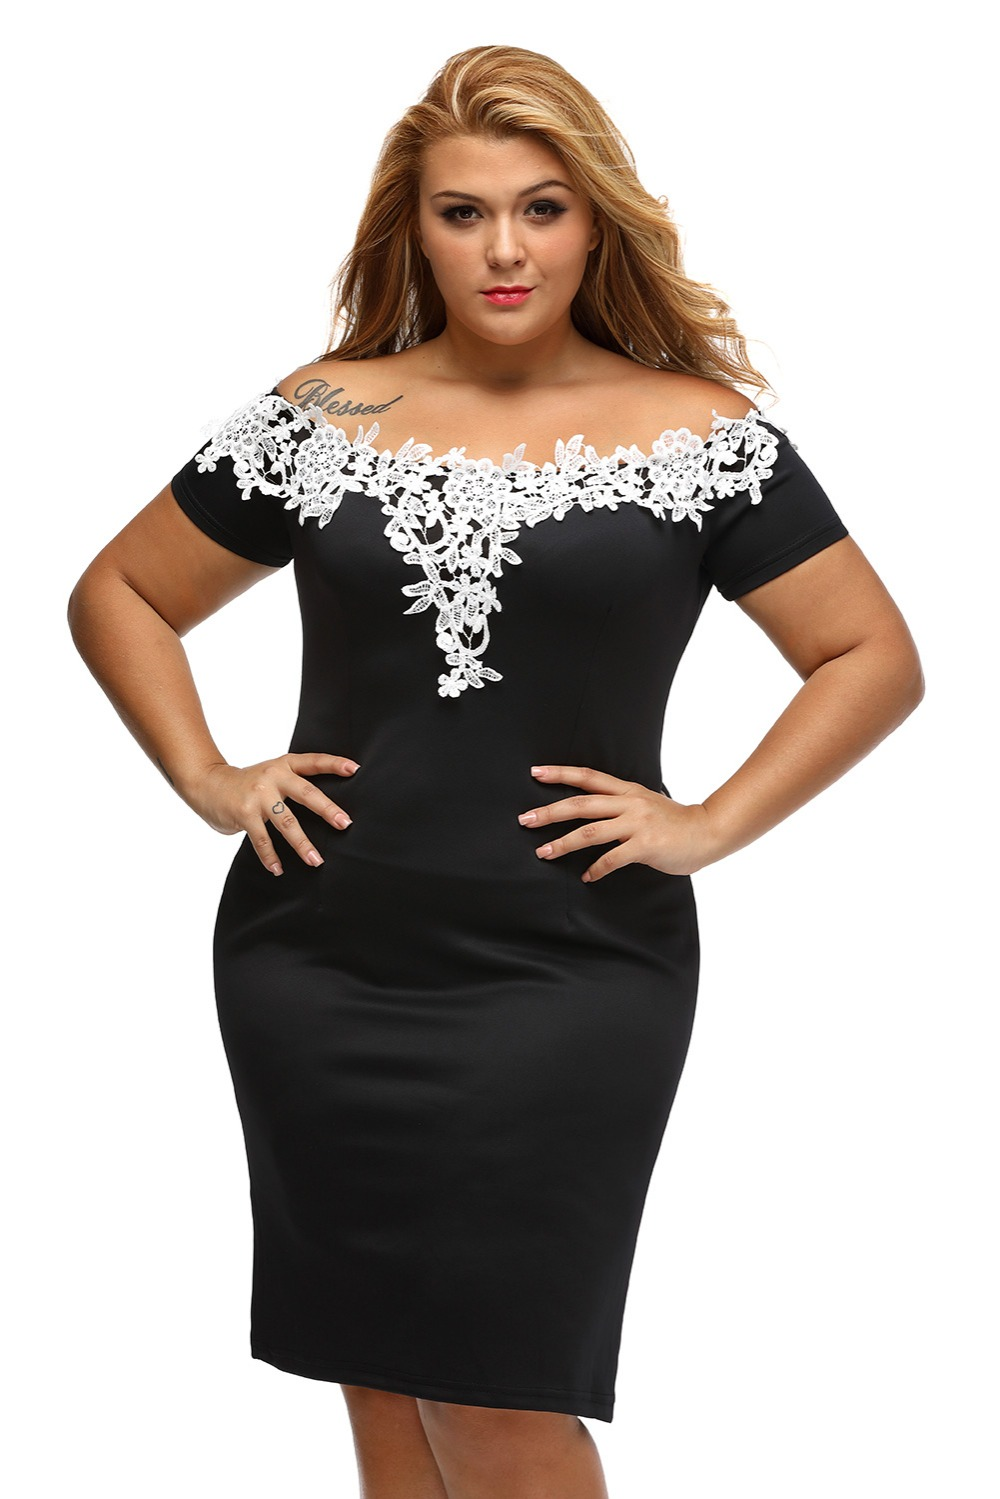 c01f01b87b6 Gosopin Elegant Ladies Sexy Short Sleeve Lace Crochet Off Shoulder Black  Plus Size Pencil Dress Party Vestidos robe LC61083